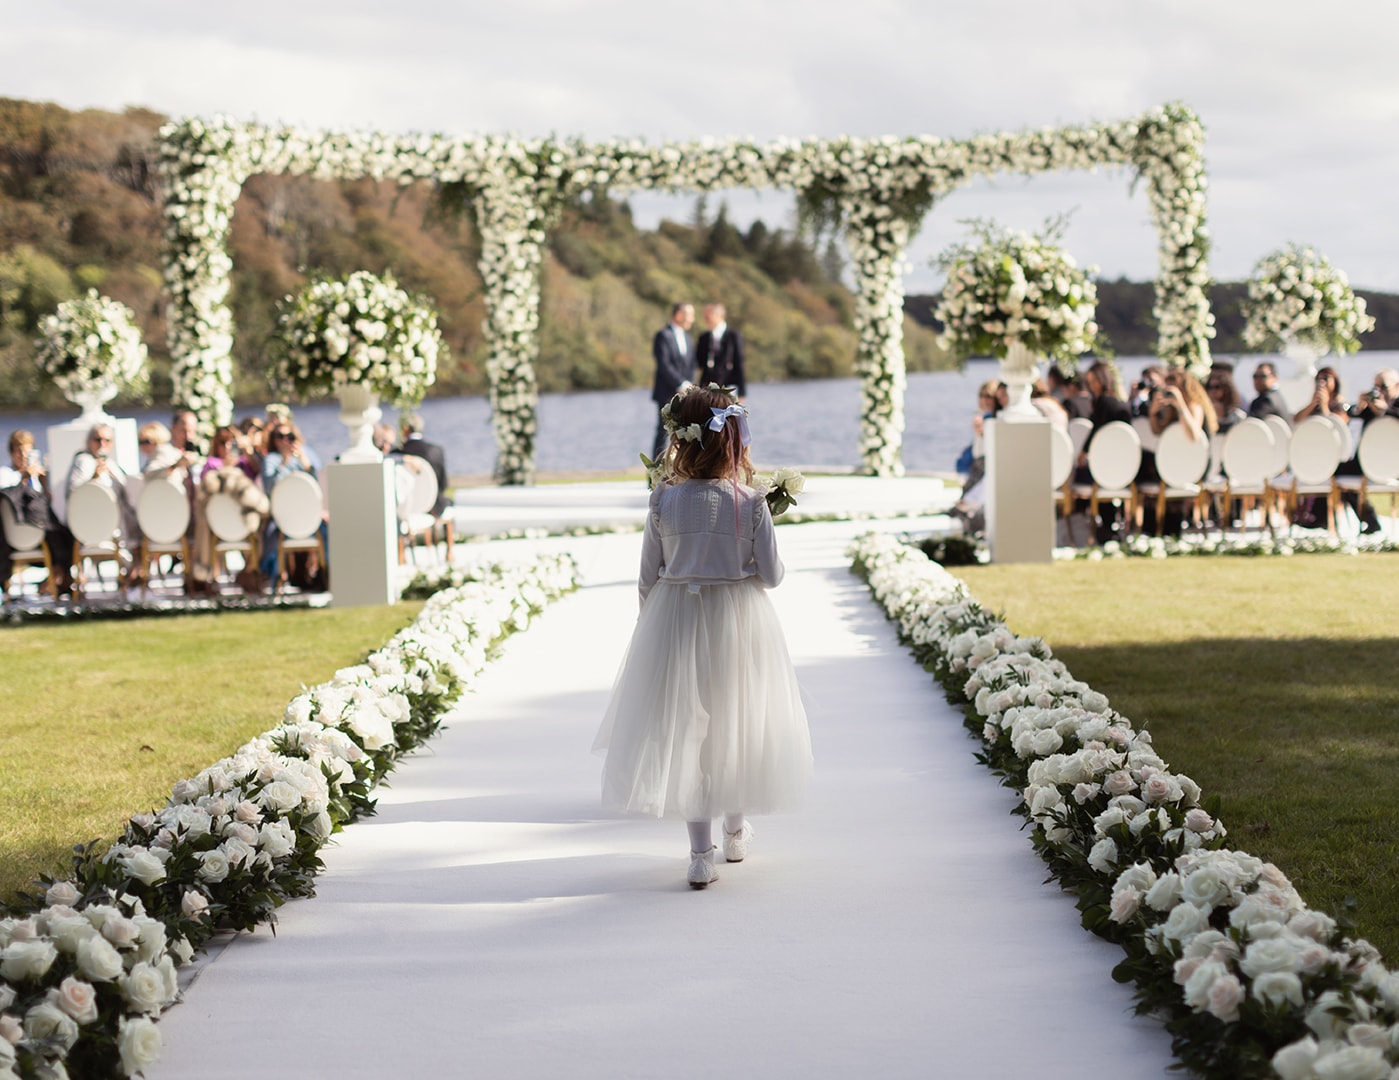 Destination Weddings Ireland, Ashford Castle, Olivia Buckley International, Wedding planners in Ireland, Event Planners in Ireland